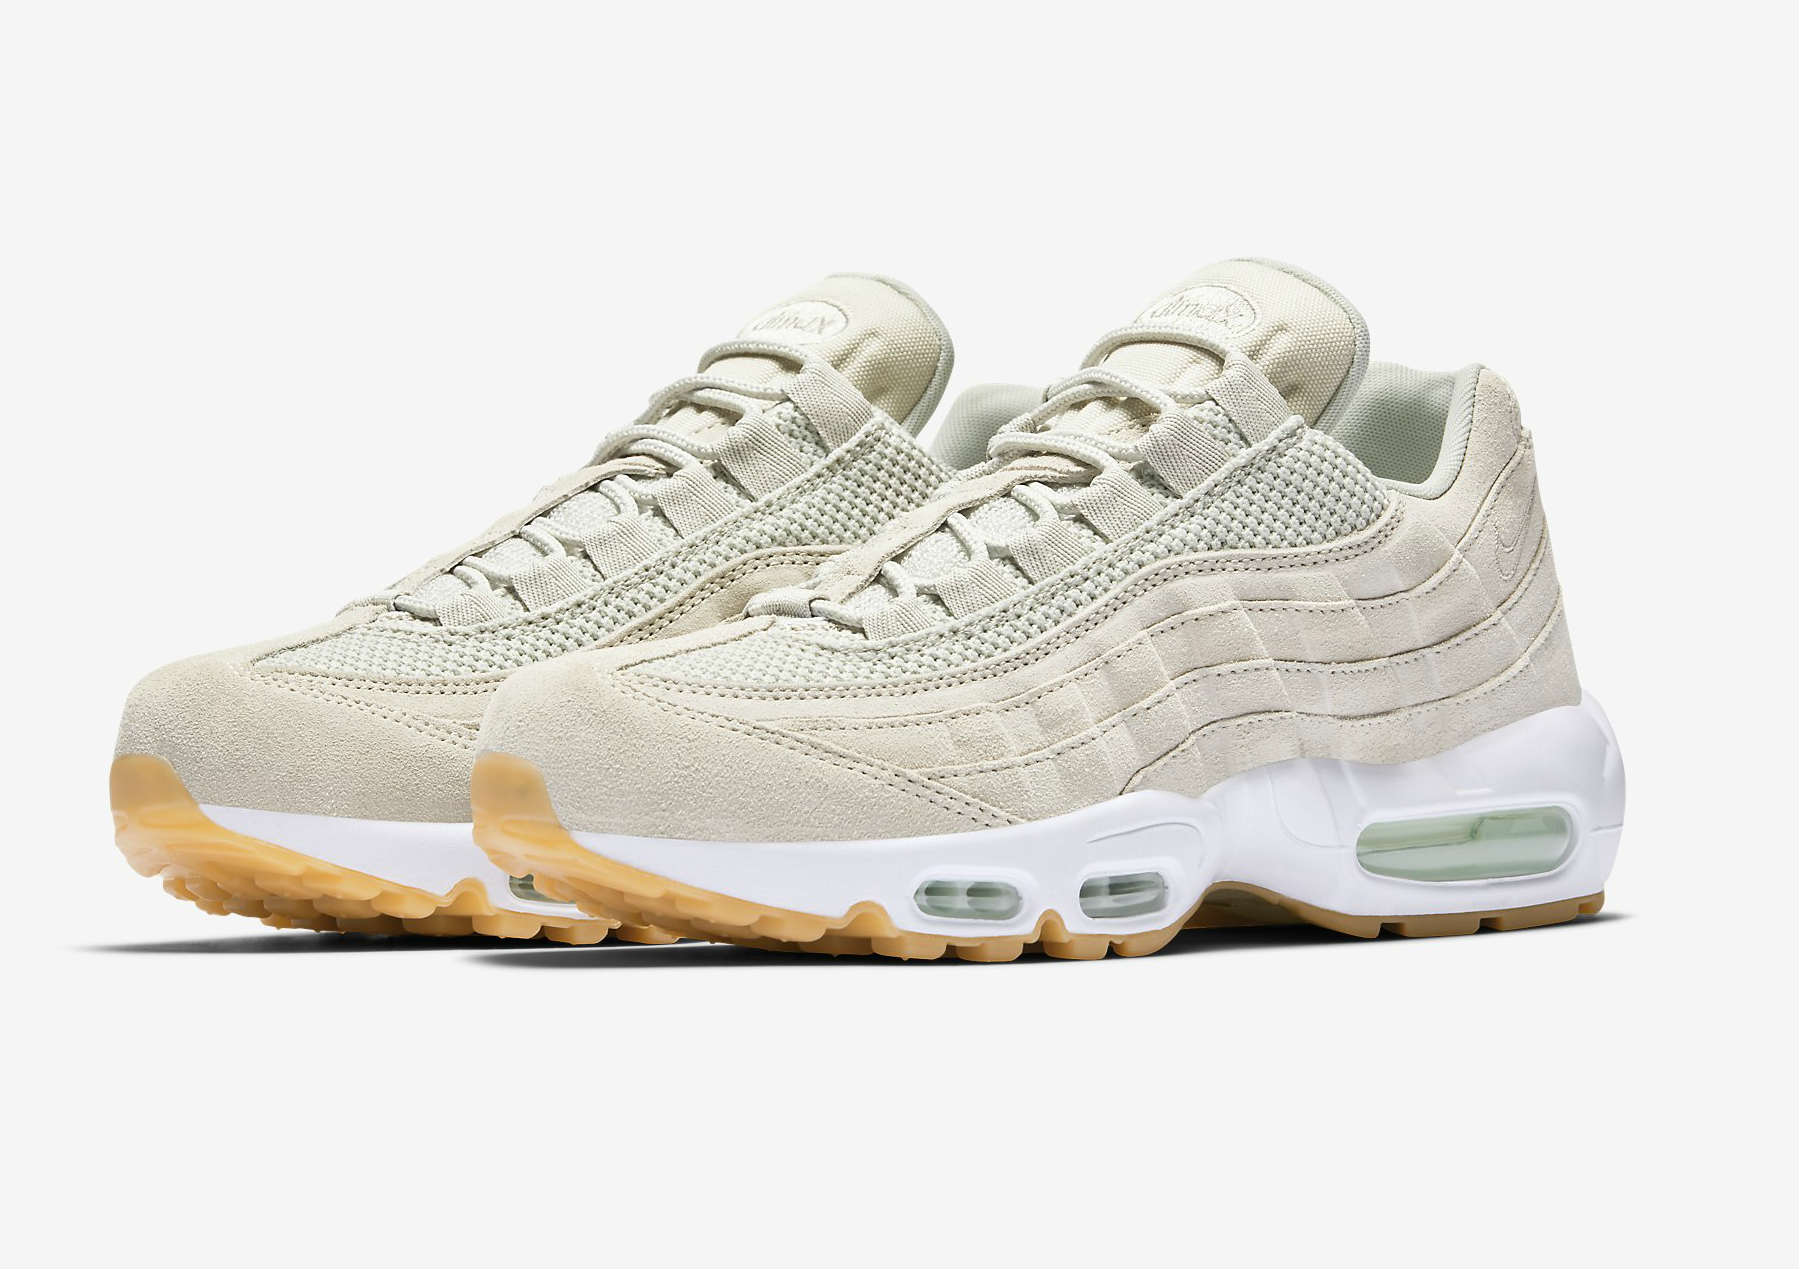 nike air max 95 femme light bone